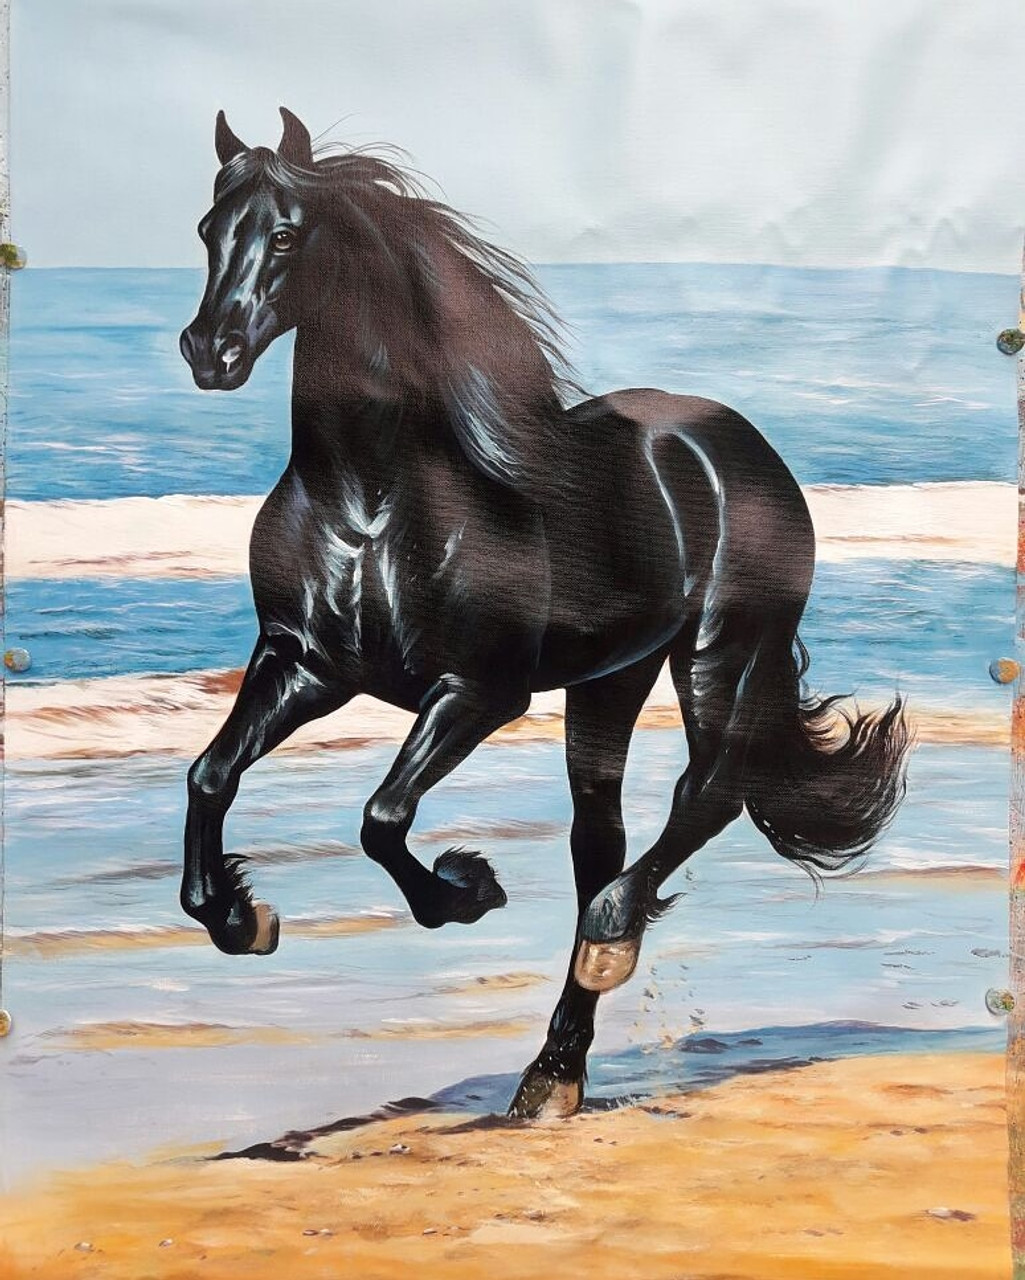 Buy Black Beauty Running Horse Handmade Painting By Artoholic Code Art 3319 29724 Paintings For Sale Online In India